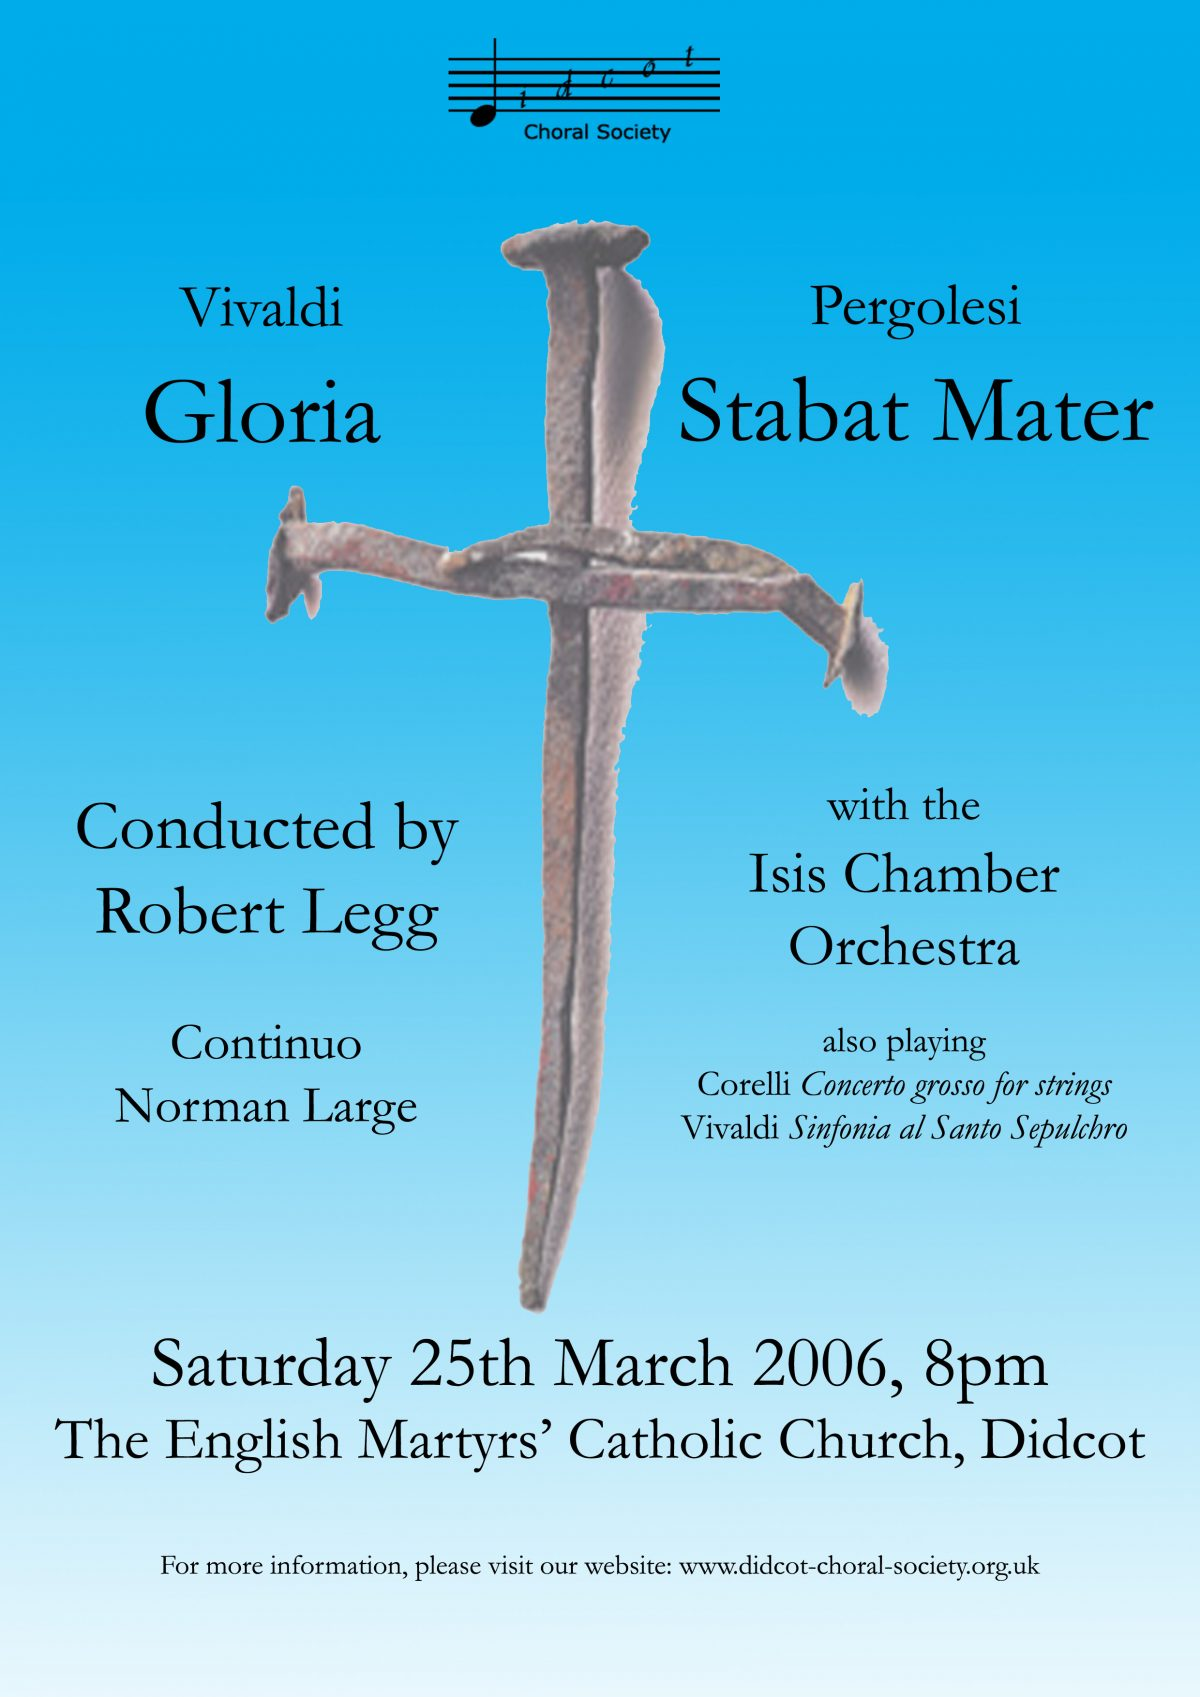 Vivaldi and Pergolesi March 2006